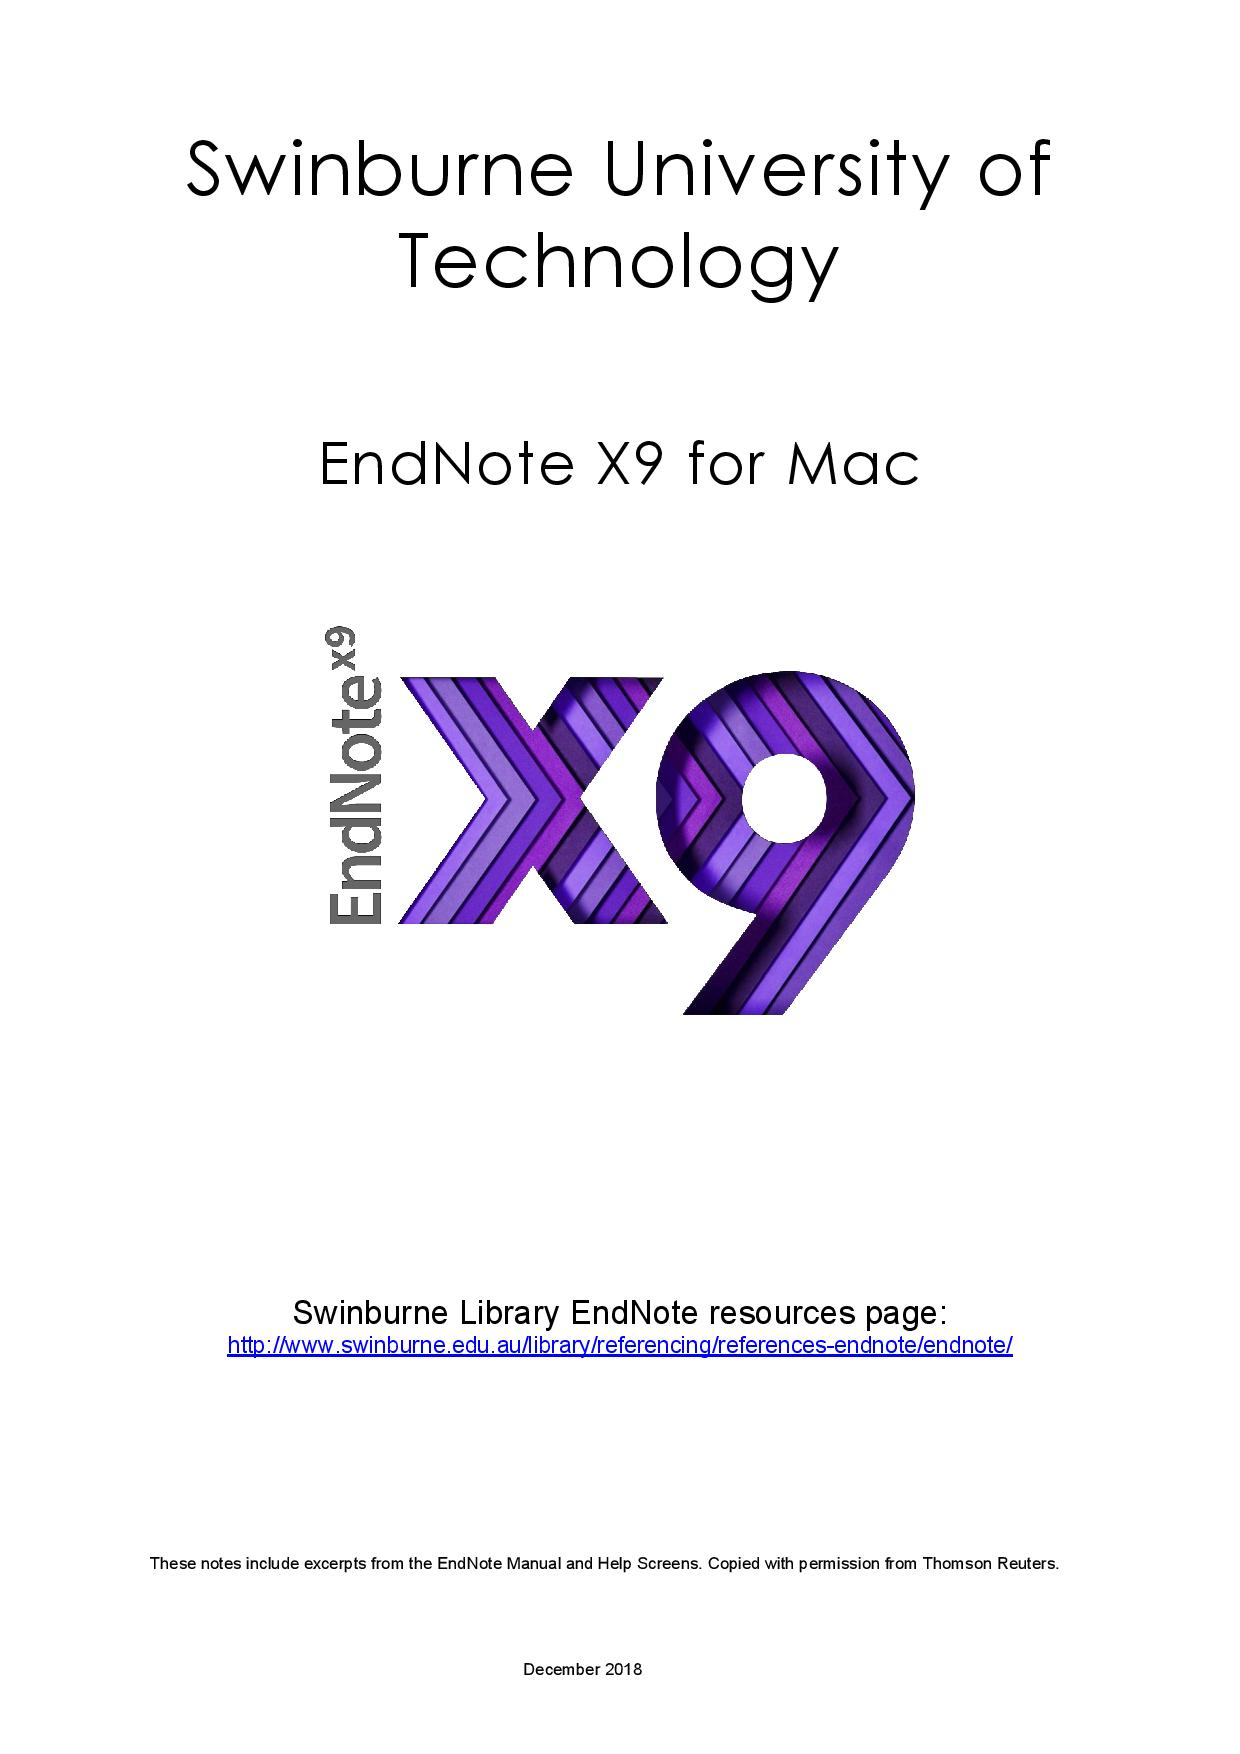 Swinburne Guide to EndNote for desktop (Mac)